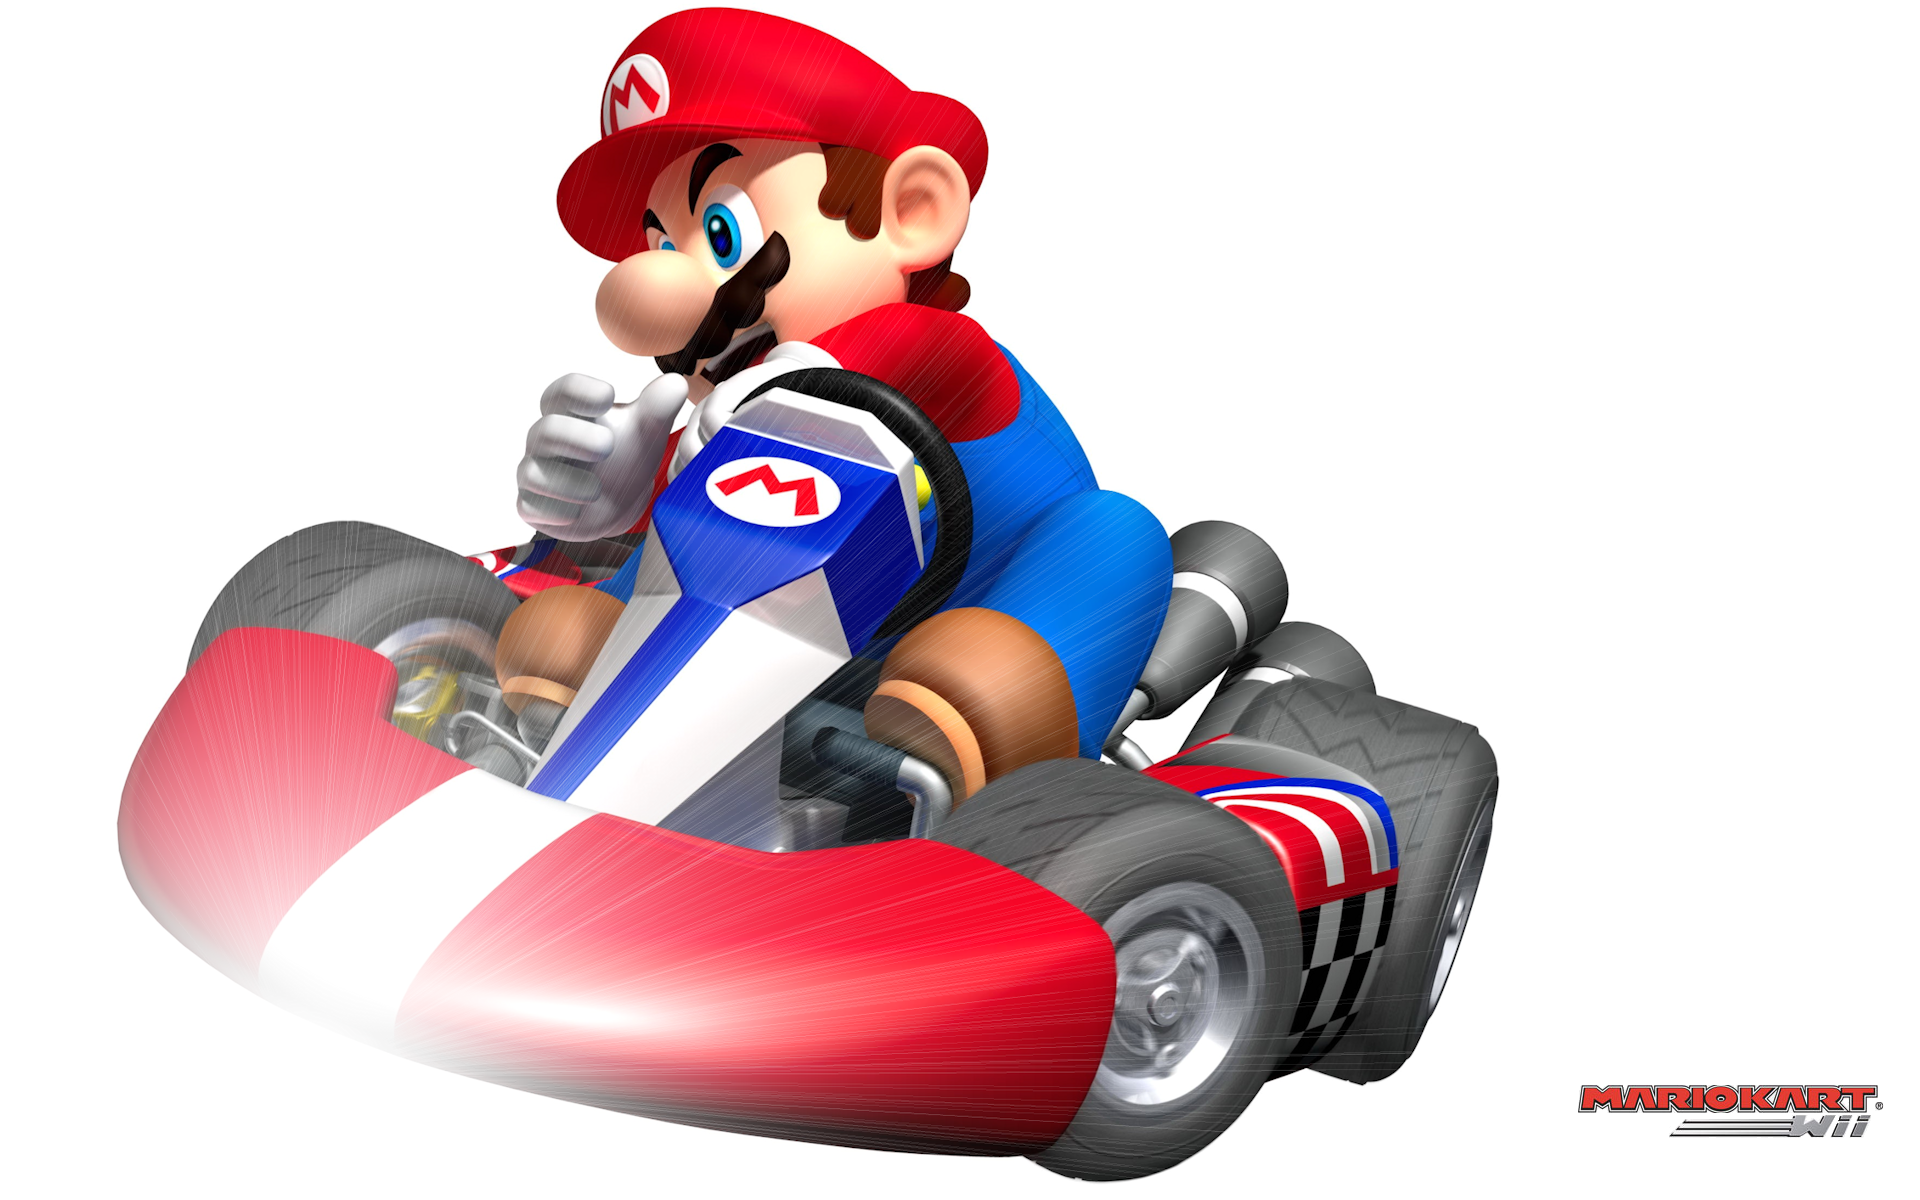 mario kart wii hd wallpaper background image 1920x1200. Black Bedroom Furniture Sets. Home Design Ideas